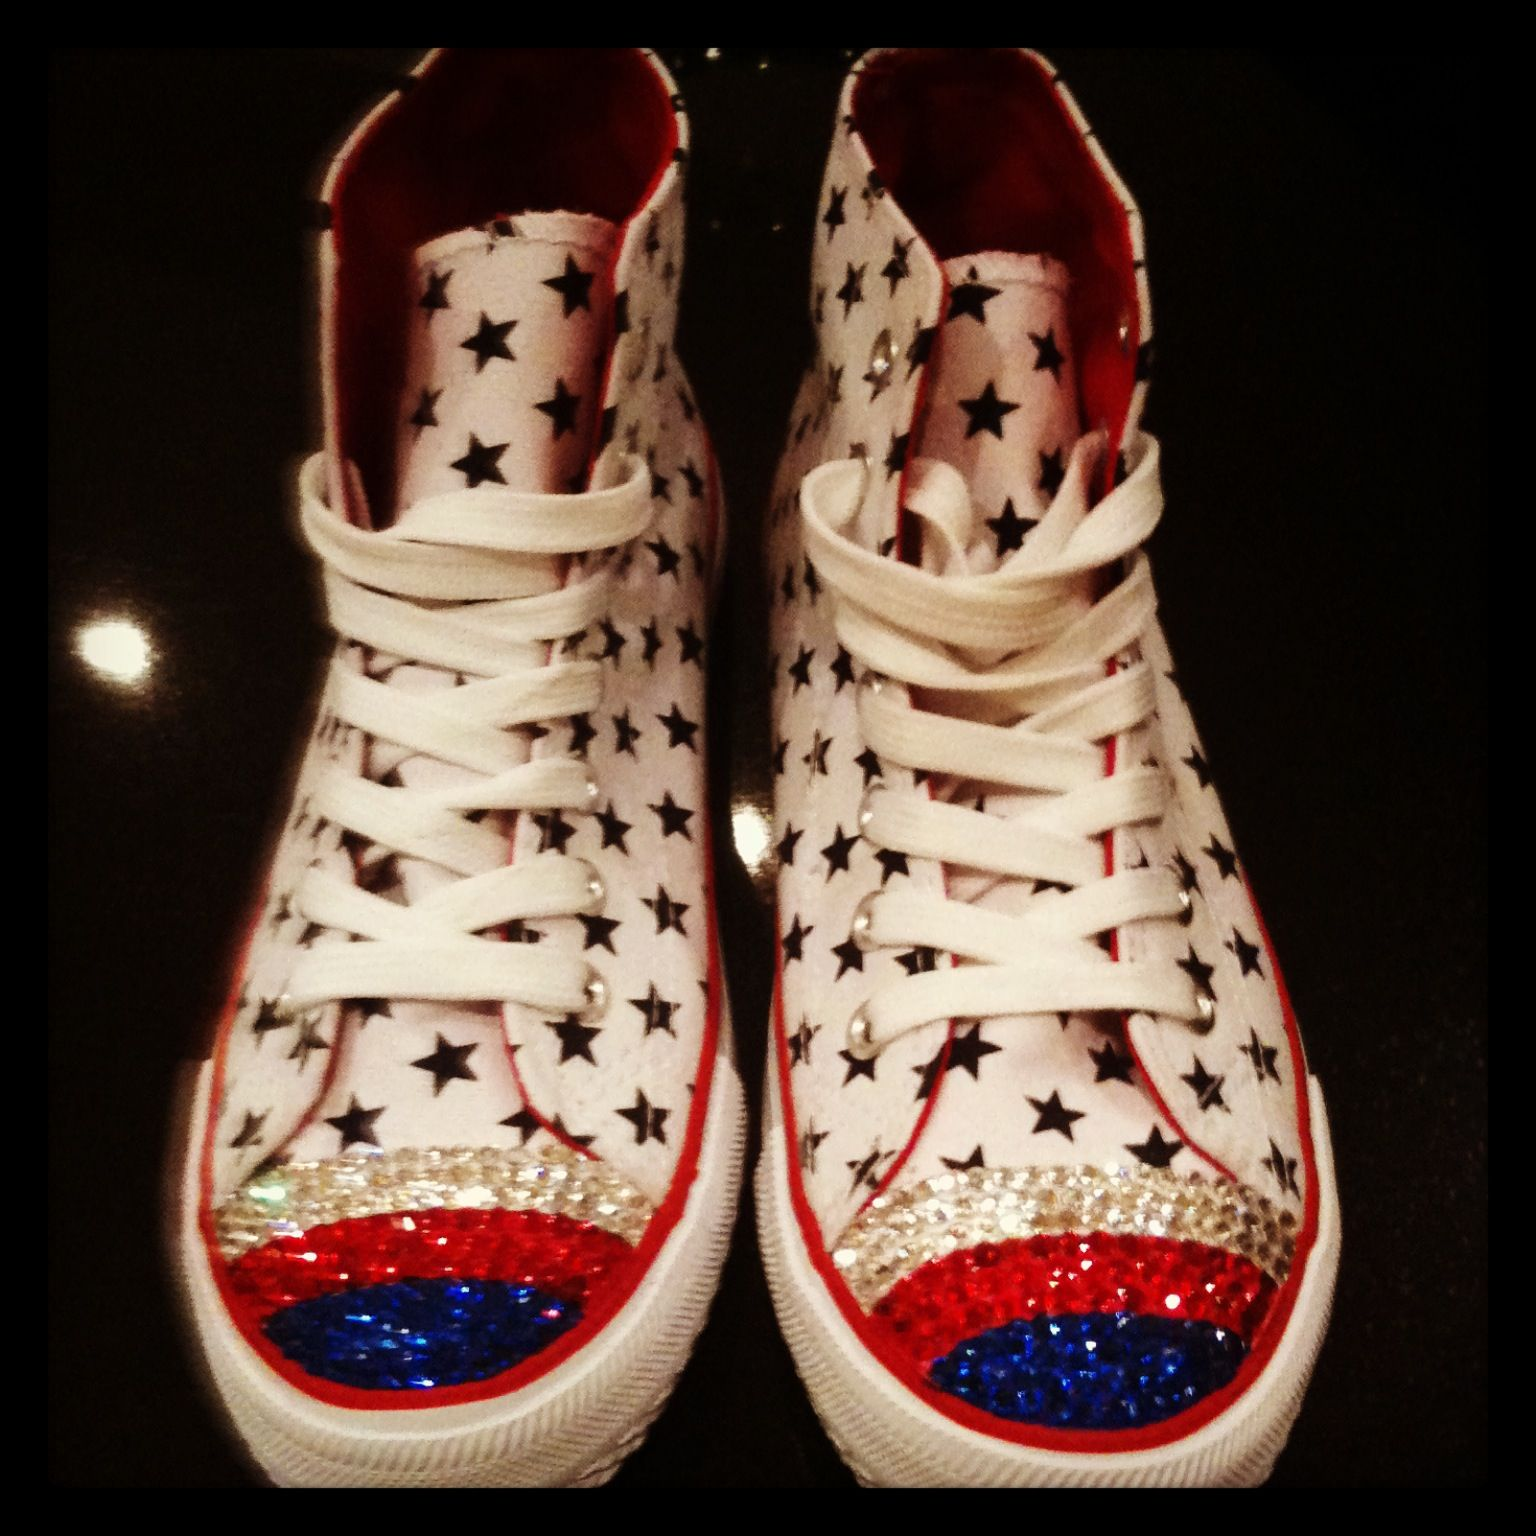 Customised high top converse !!!! # Swarovski # bling # converse #cool